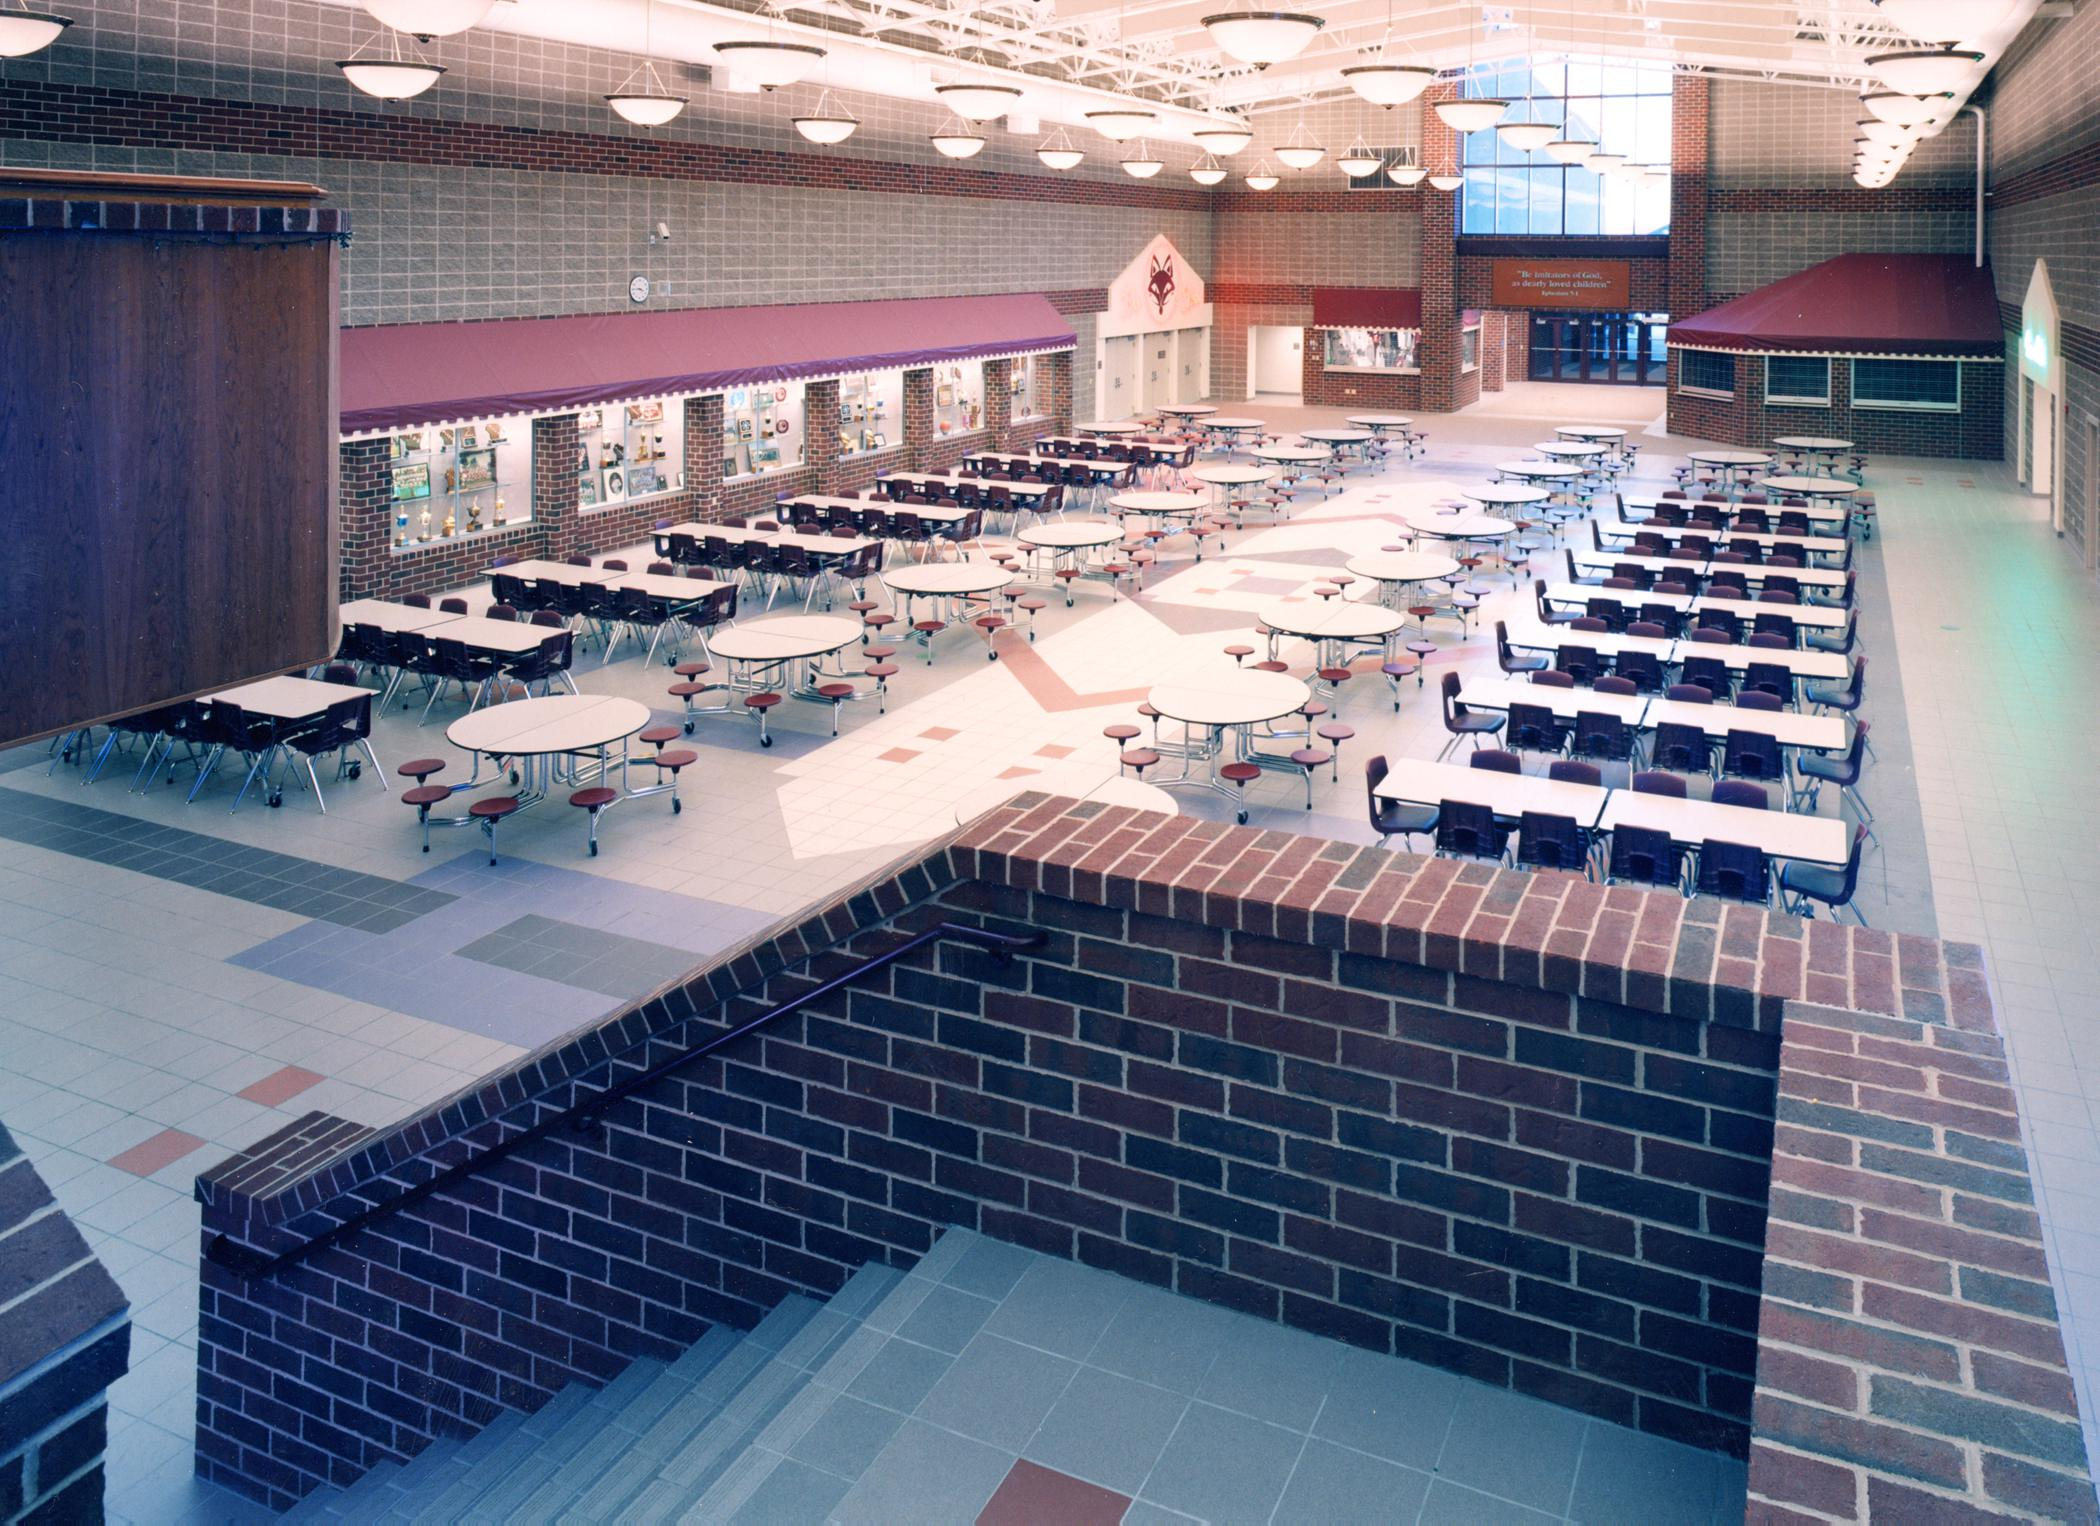 Commons (cafeteria) from above